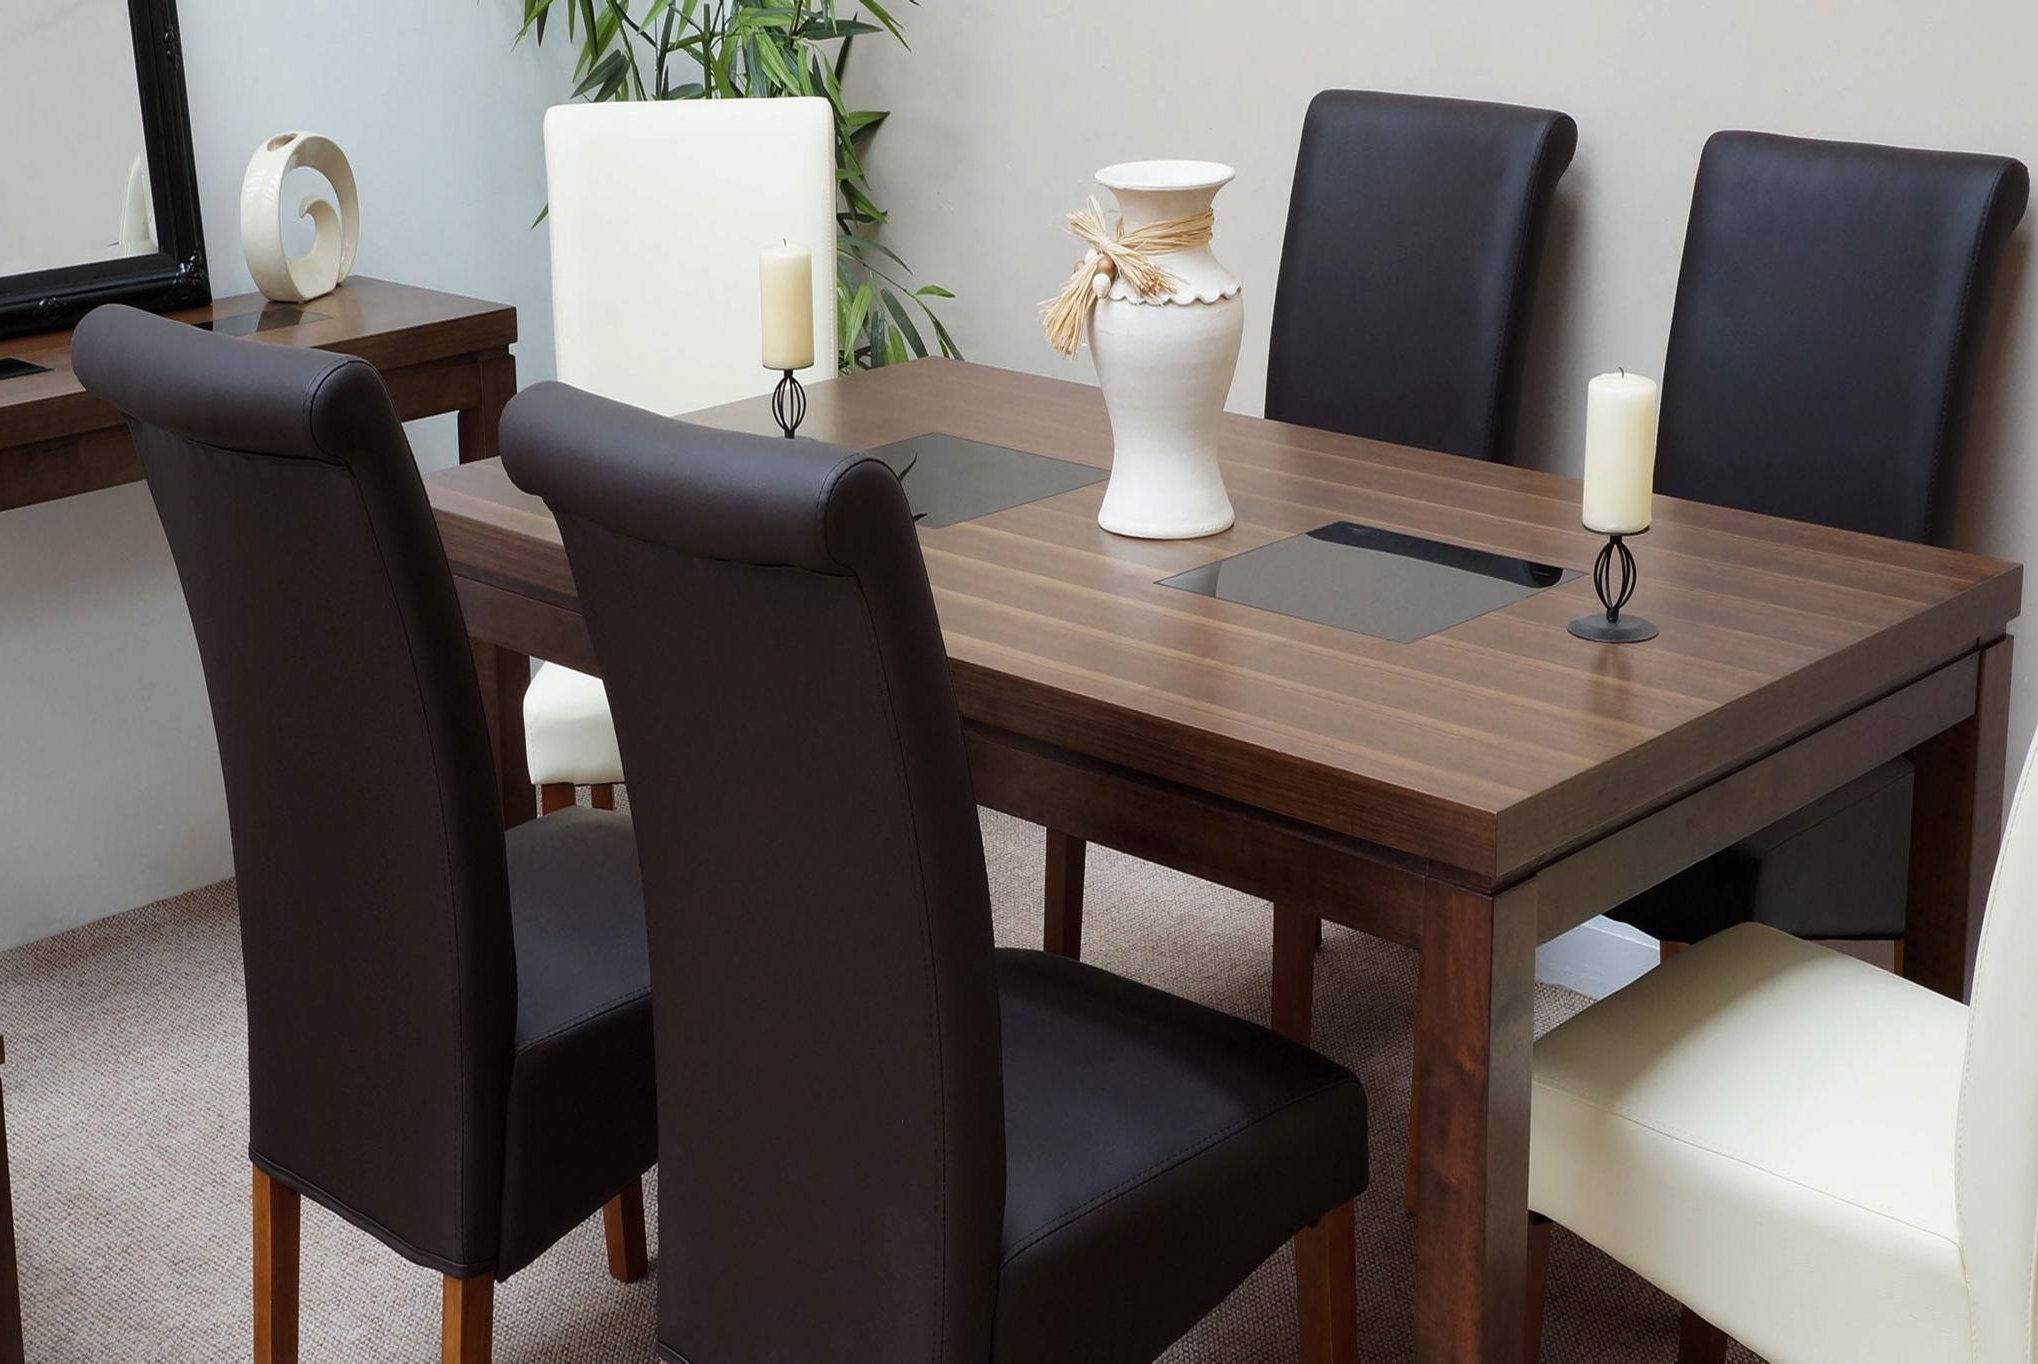 Sydney Dark 5Ft & 6 Chairs – Dublin, Ireland Furniture Store Within Latest Dark Wood Dining Tables 6 Chairs (View 23 of 25)